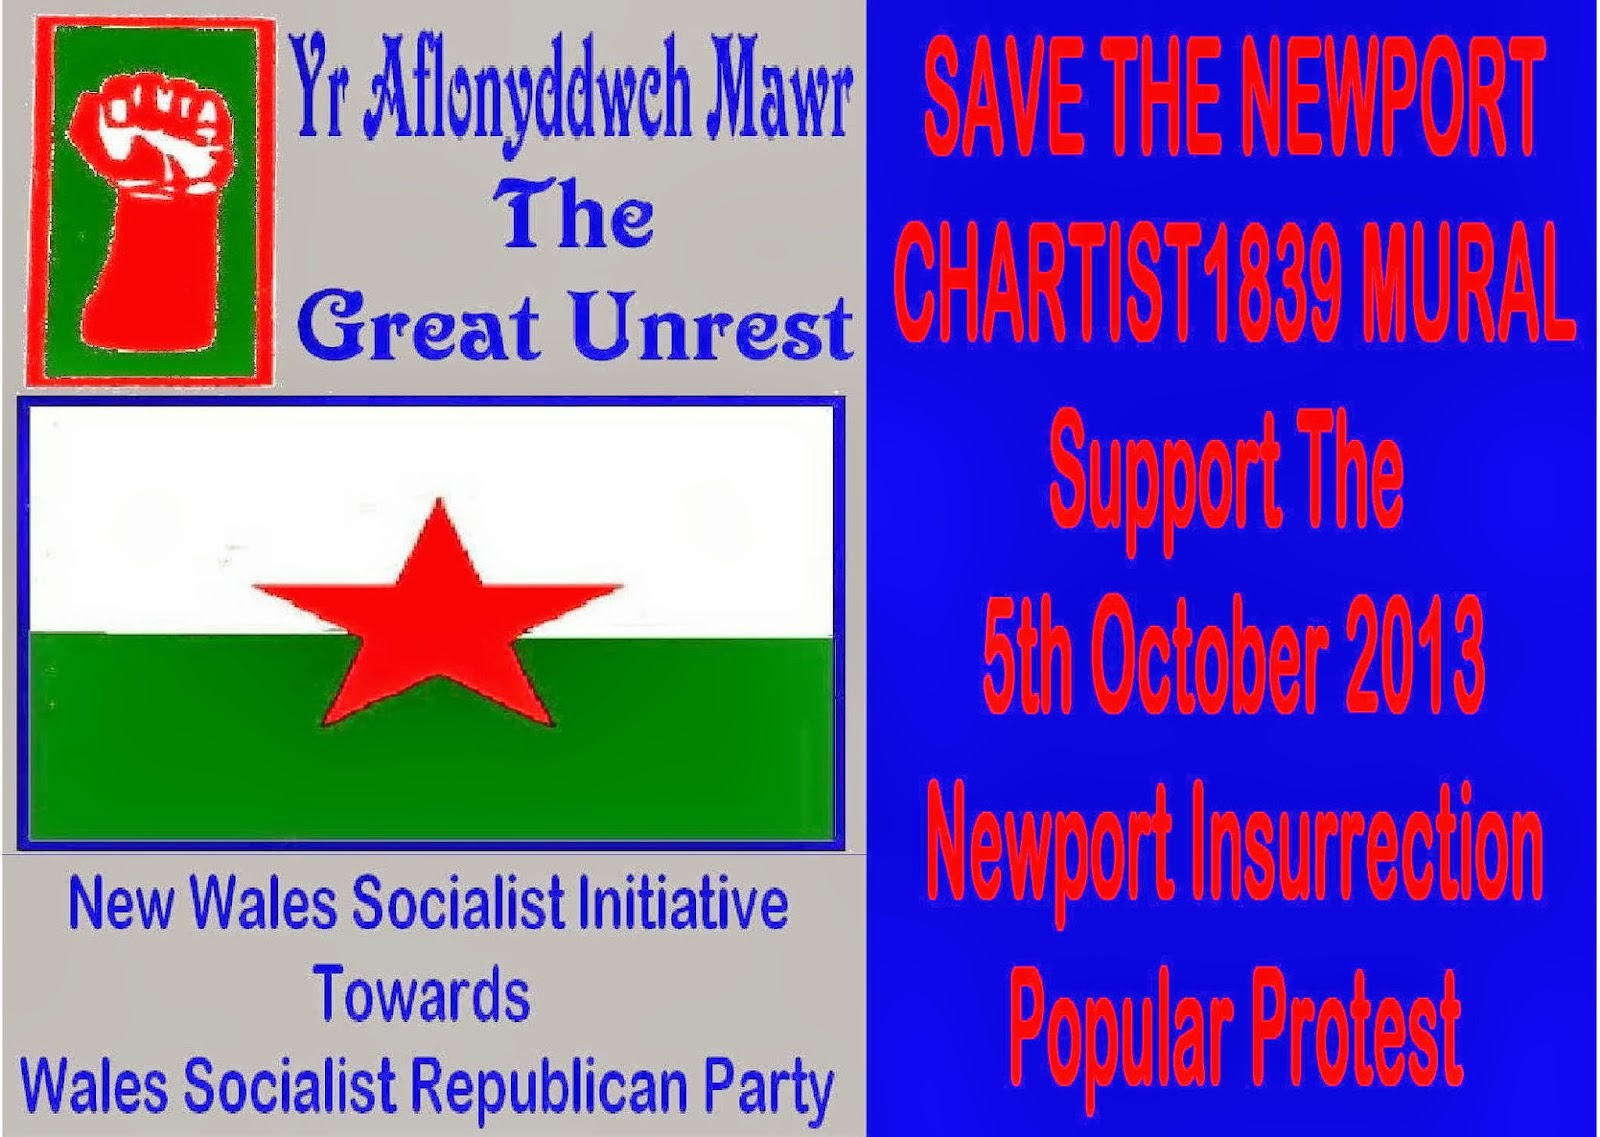 Pitchfork and pike newport insurrection day saturday 3 for Chartist mural newport